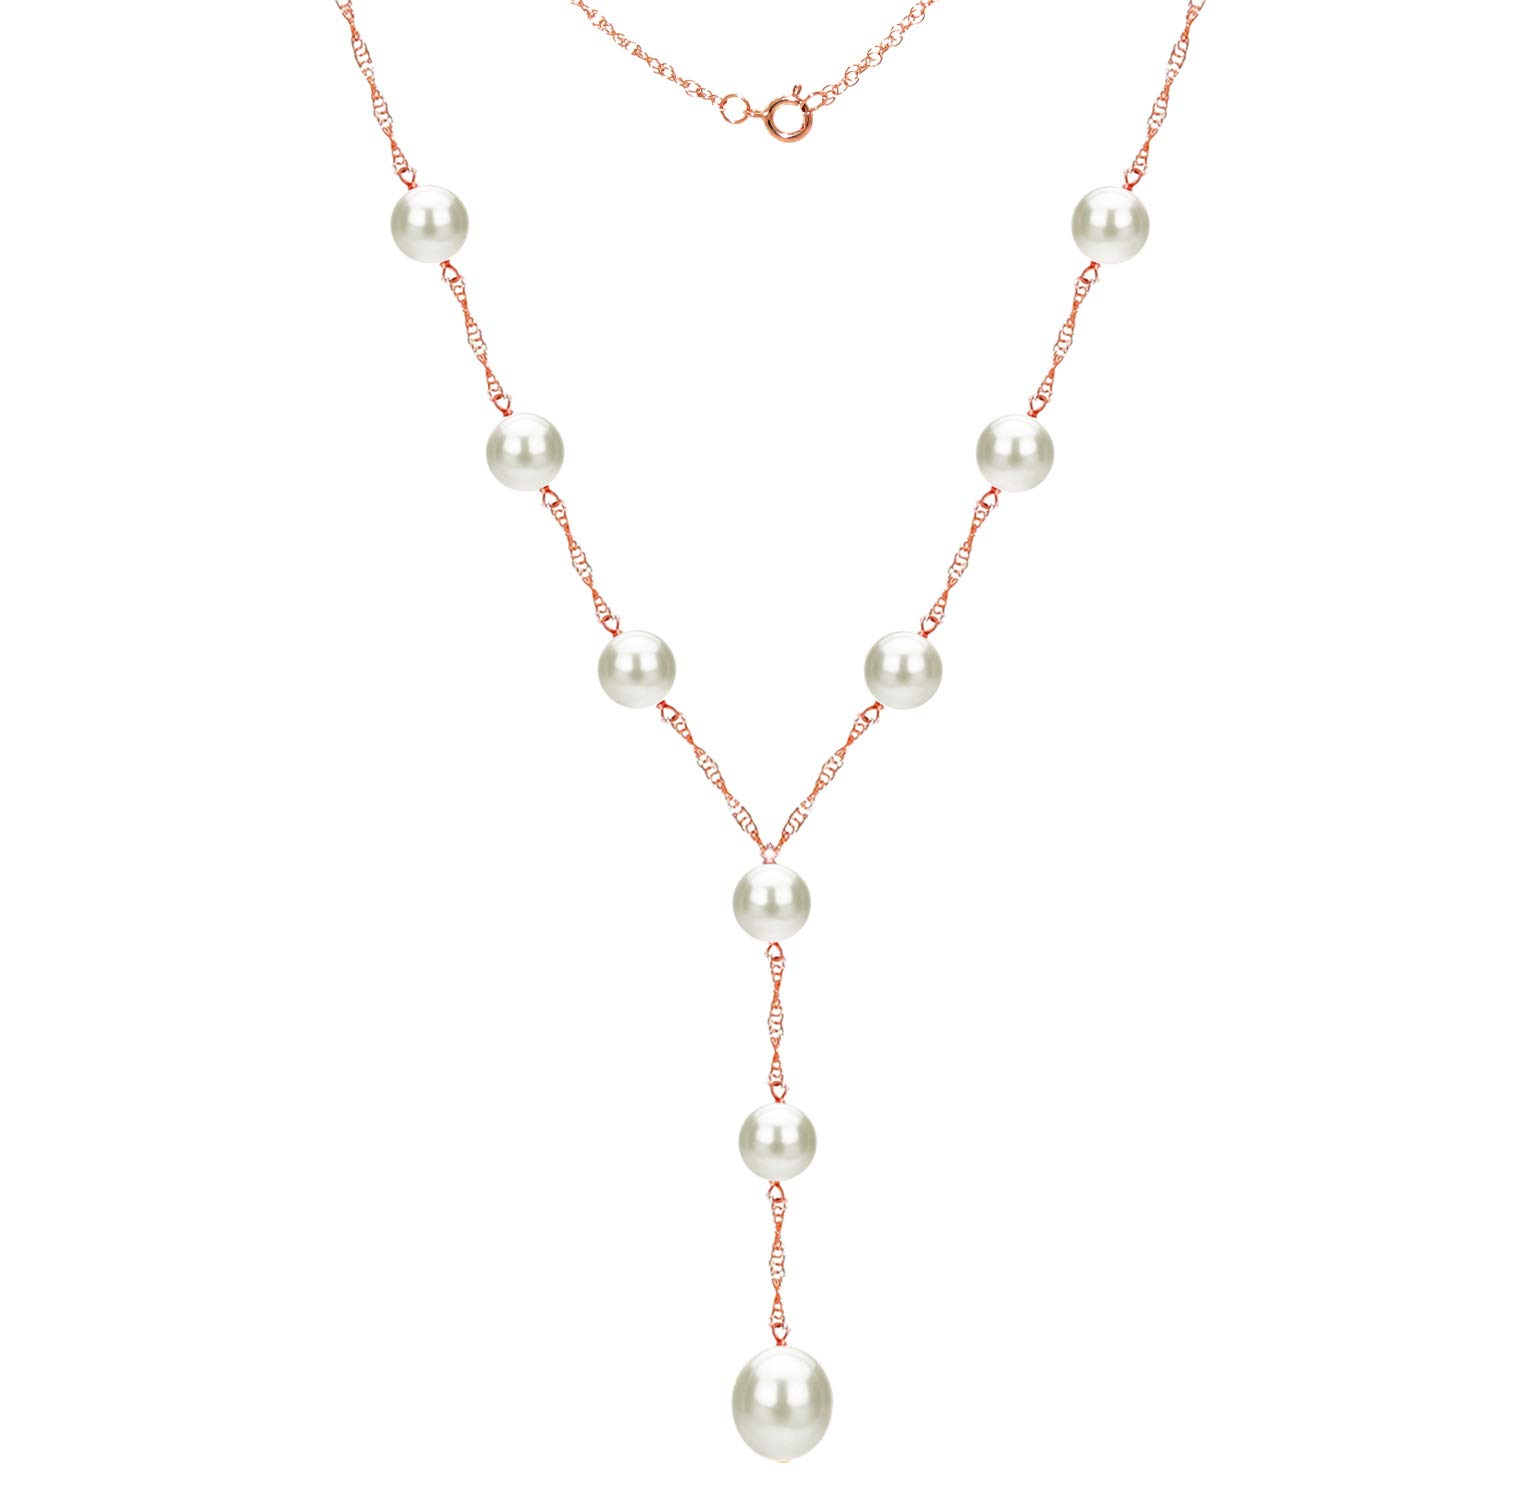 14k Rose Gold 8-8.5mm and 9-9.5mm White Freshwater Cultured Pearl Station Necklace, 18'' + 2'' Drop